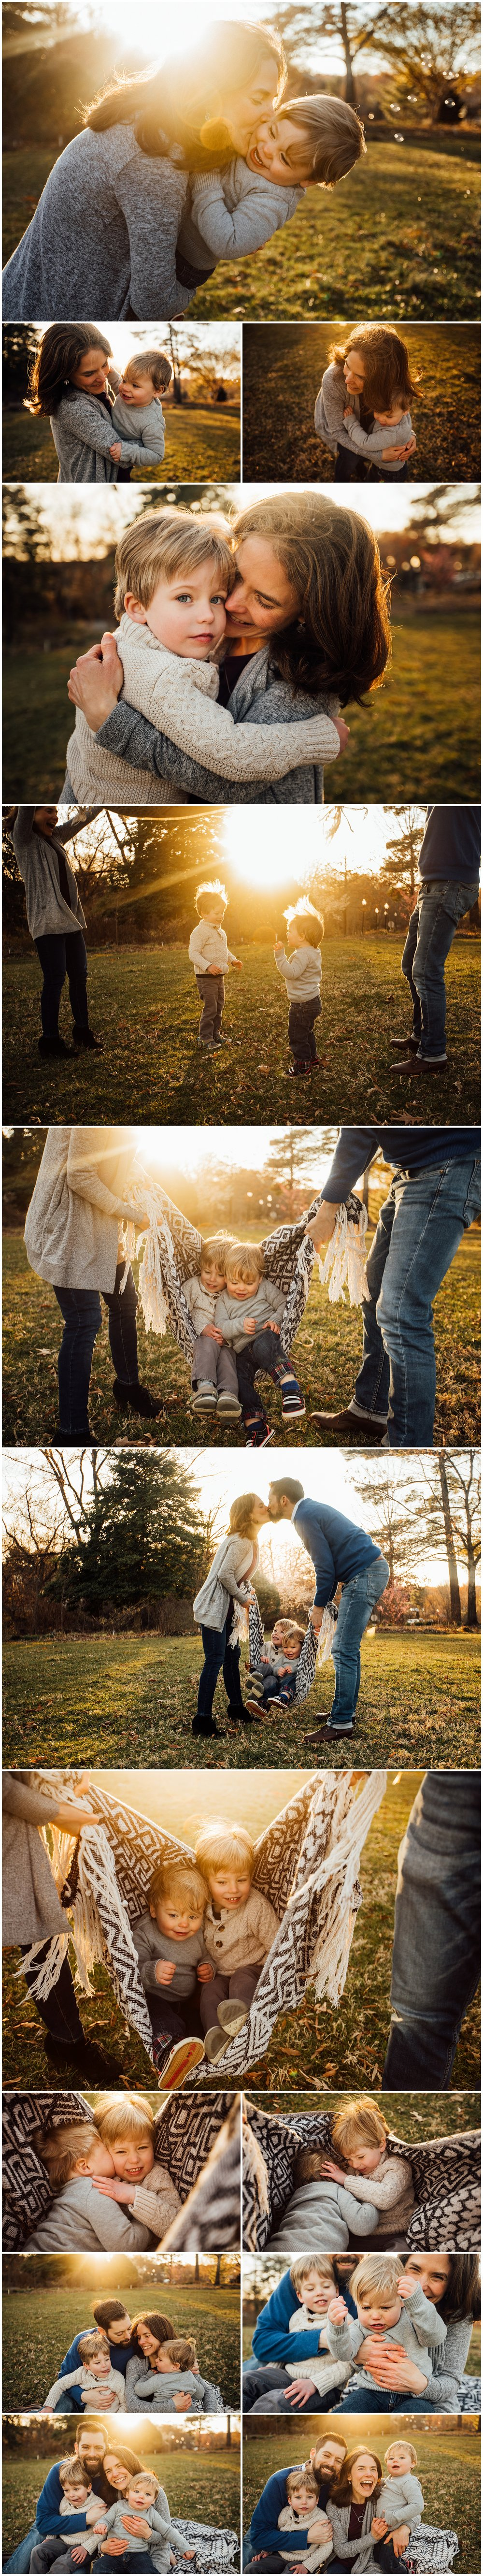 Sunlit family session with bubbles by Huntsville and Madison Alabama family photographer Rachel K Photo